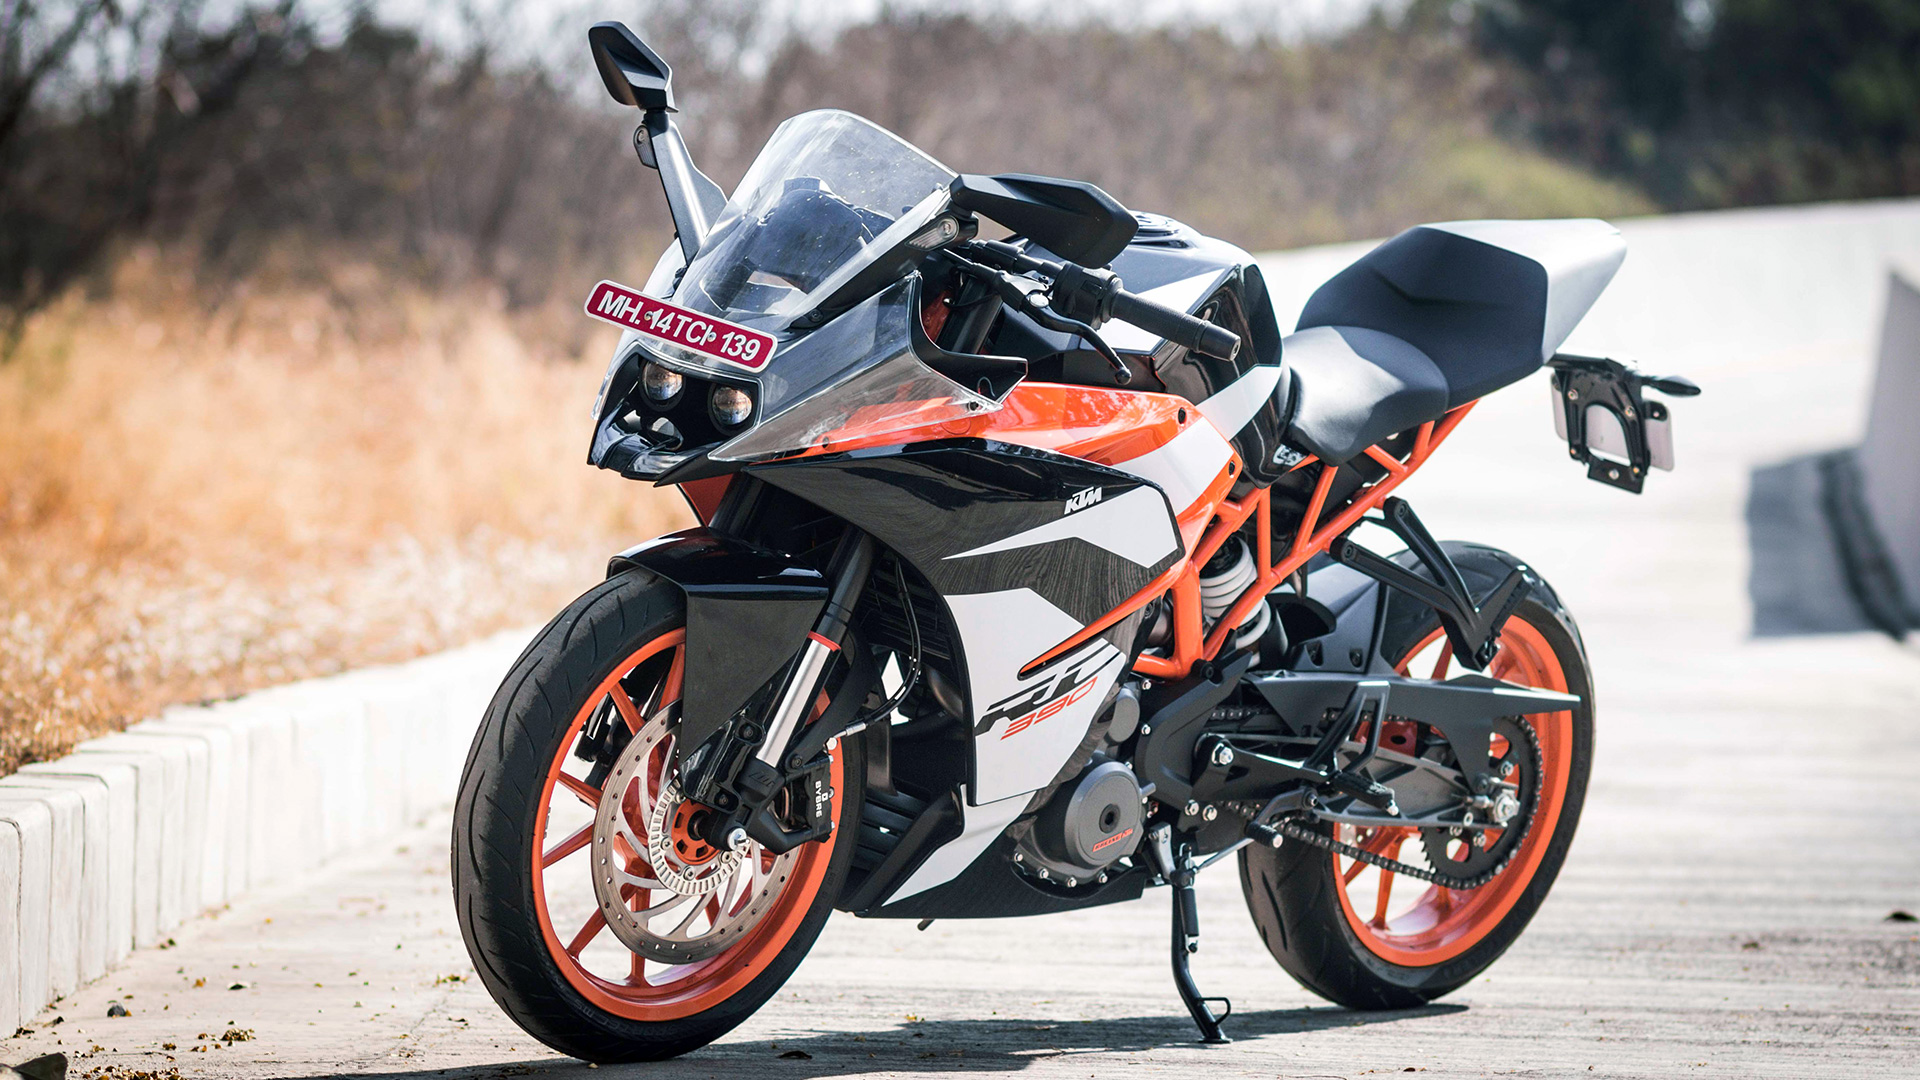 ktm rc 390 2017 std compare bike photos overdrive. Black Bedroom Furniture Sets. Home Design Ideas